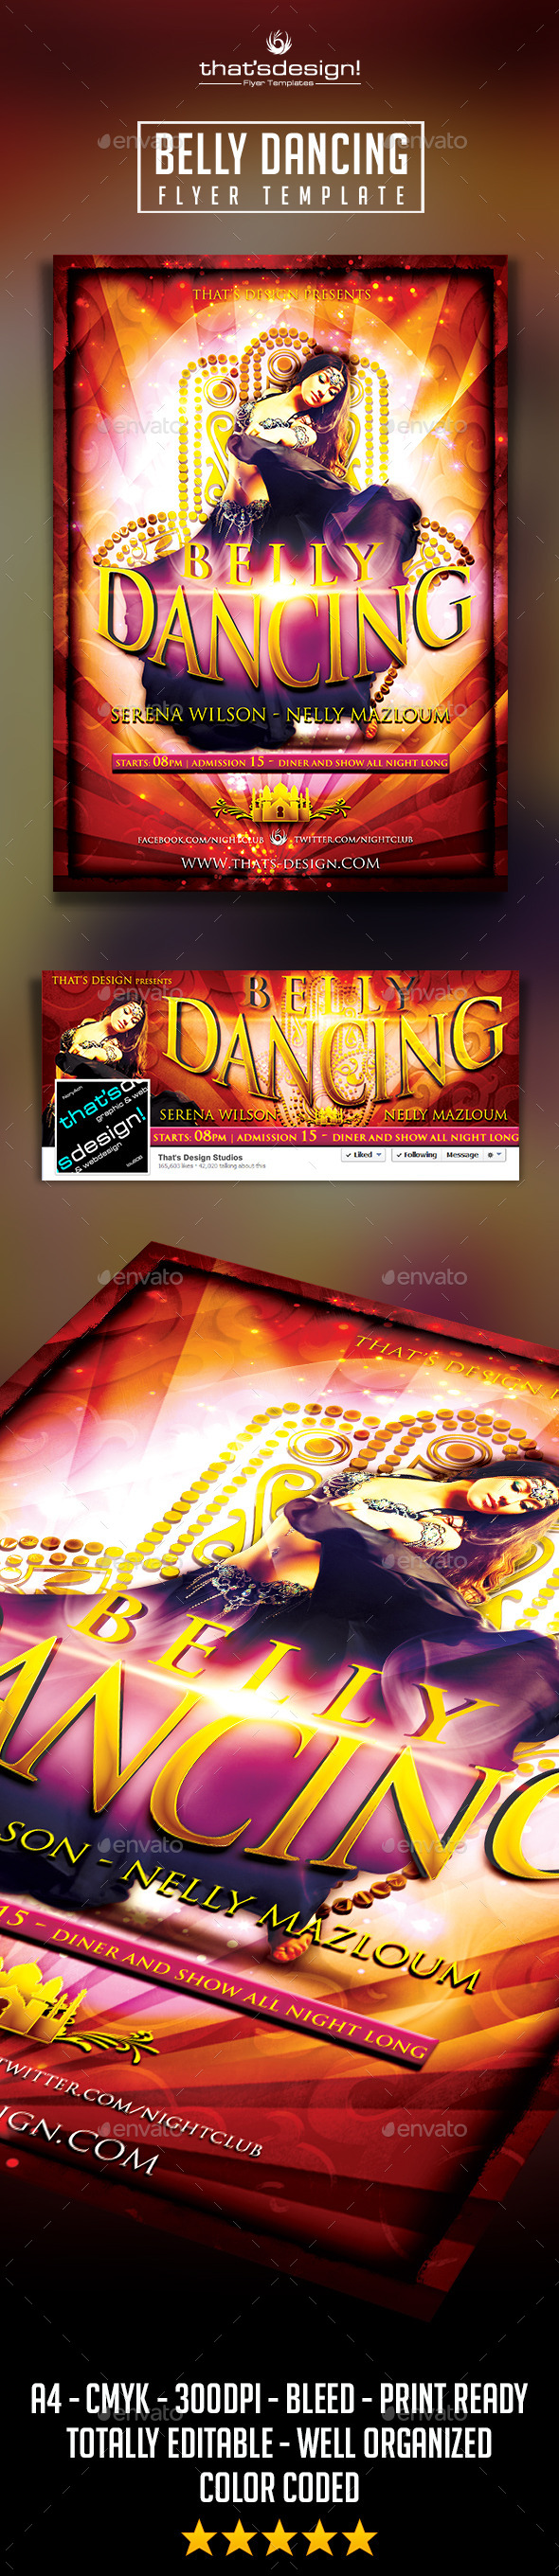 Belly Dancing Flyer Template - Clubs & Parties Events